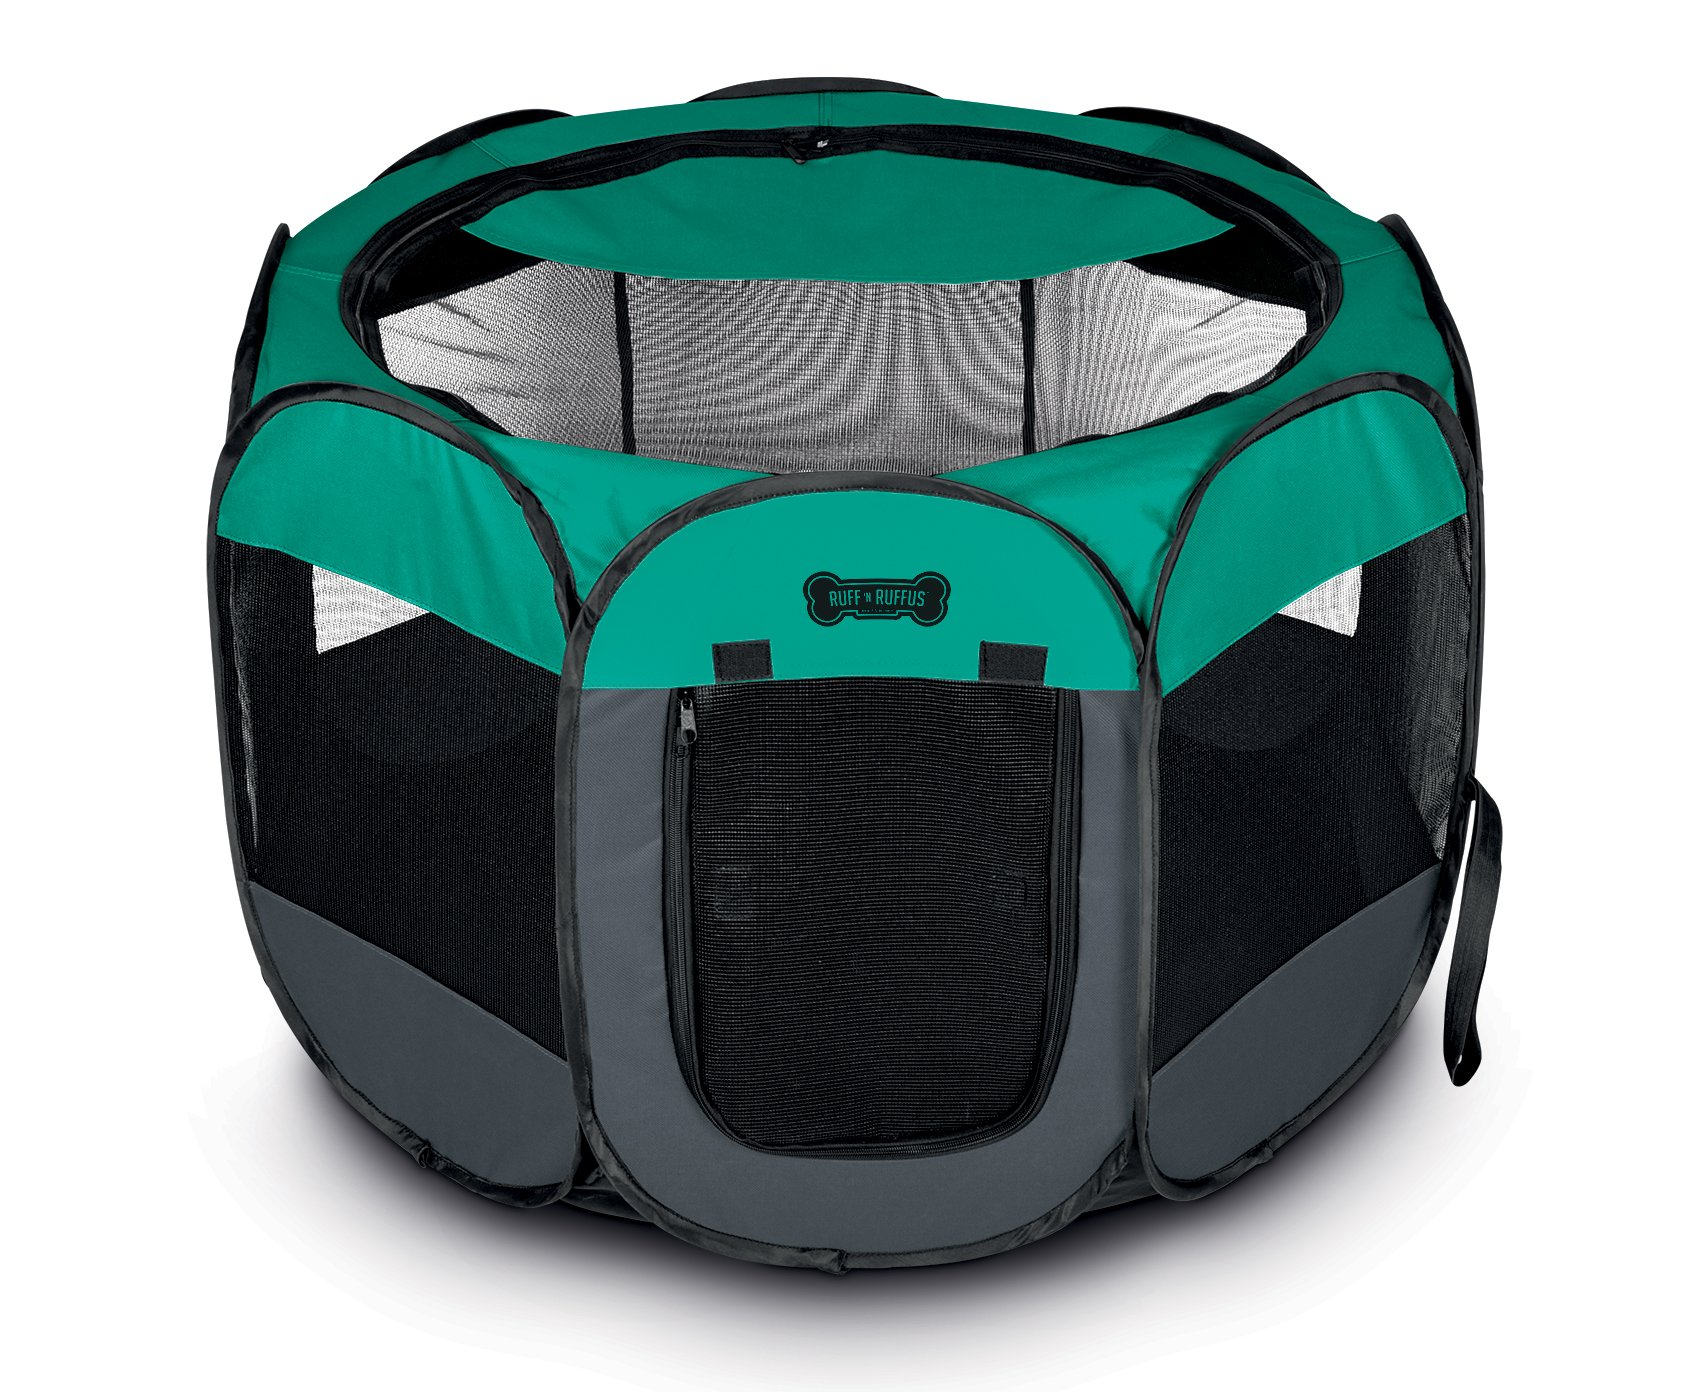 Ruff 'n Ruffus Portable Foldable Pet Playpen with Carrying Case & Collapsible Travel Bowl | Indoor / Outdoor use | Water resistant | Removable shade cover | Dogs / Cats / Rabbit | Available In 2 Sizes by Unleashed (Image #2)